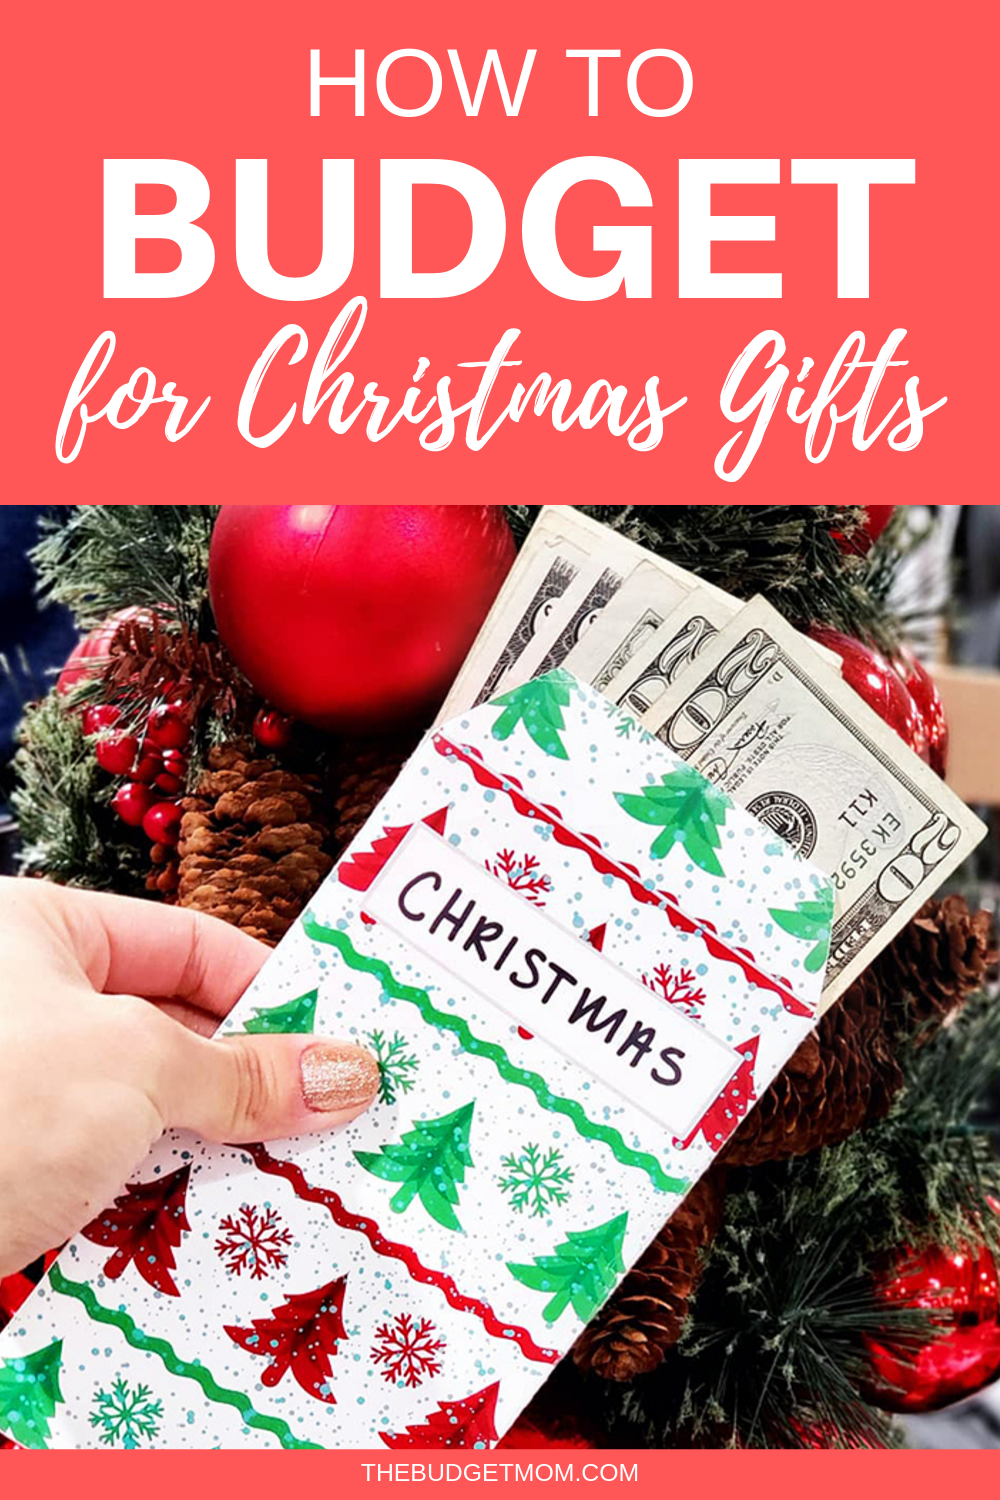 How To Budget For Christmas Gifts Christmas On A Budget Budgeting Budgeting Money